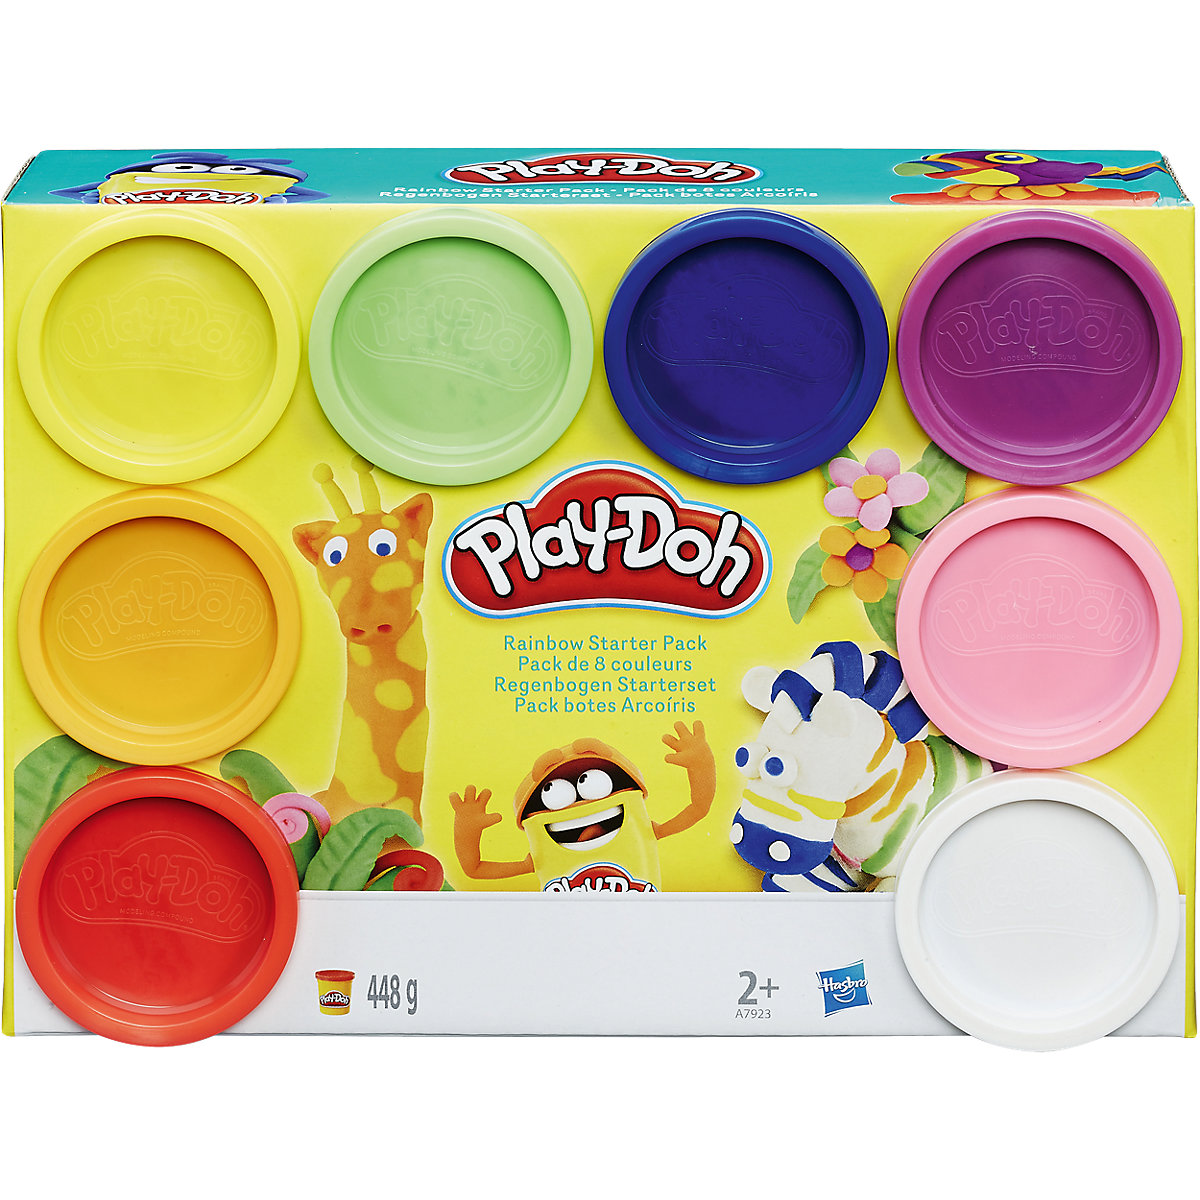 Play Doh Modeling Clay Slime 3766229 office plasticine hand gum sculpt for kids girl boy toy toys game play play doh modeling clay slime 8606530 office plasticine hand gum sculpt kids girl boy girls boys for children play doh